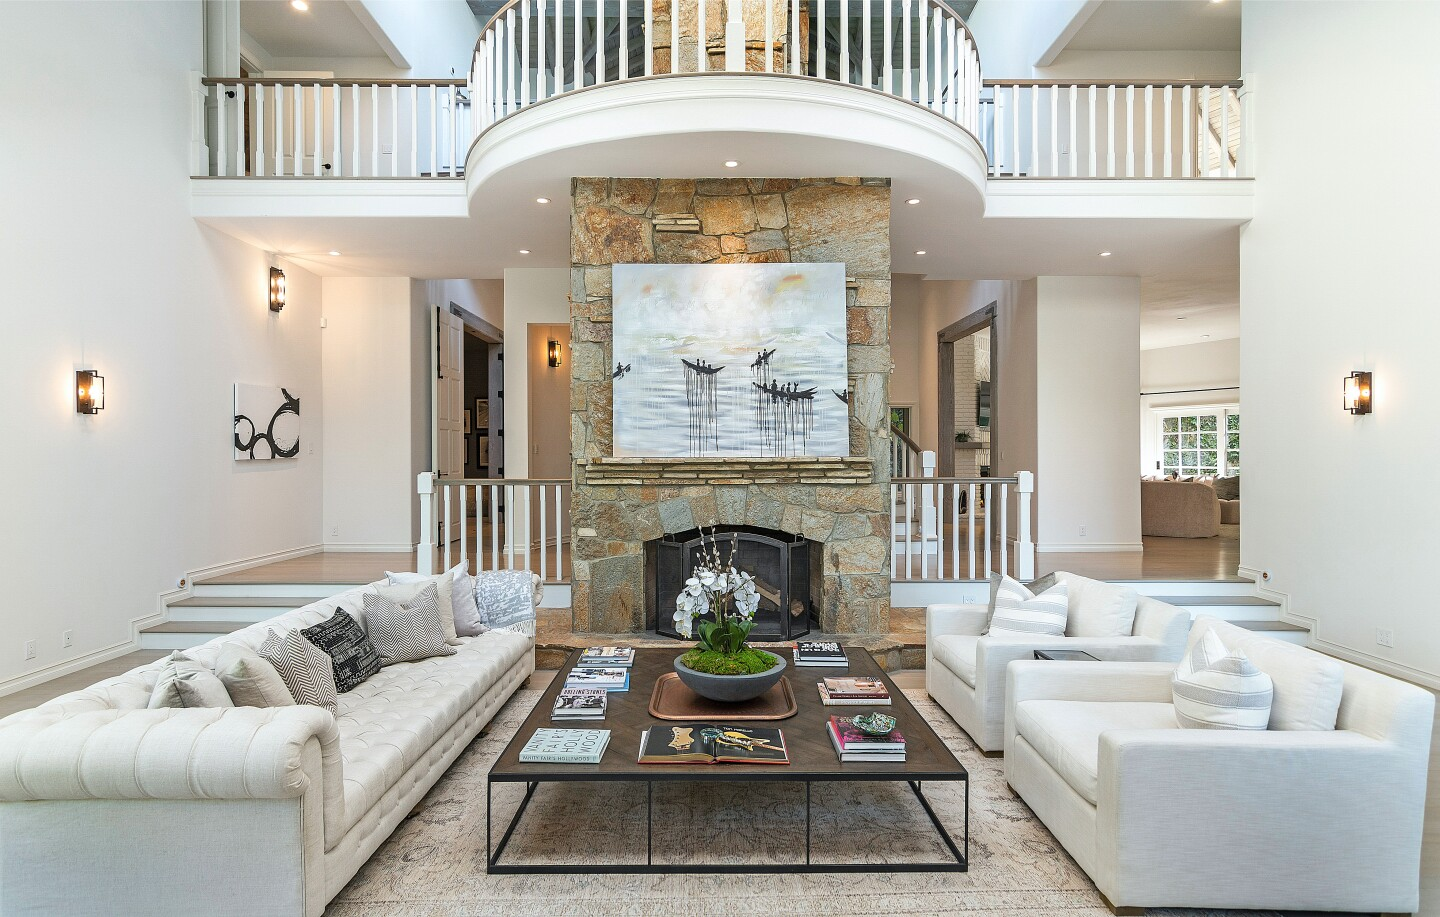 Across three stories, the scenic home holds six bedrooms and 10 bathrooms in 11,500 square feet.